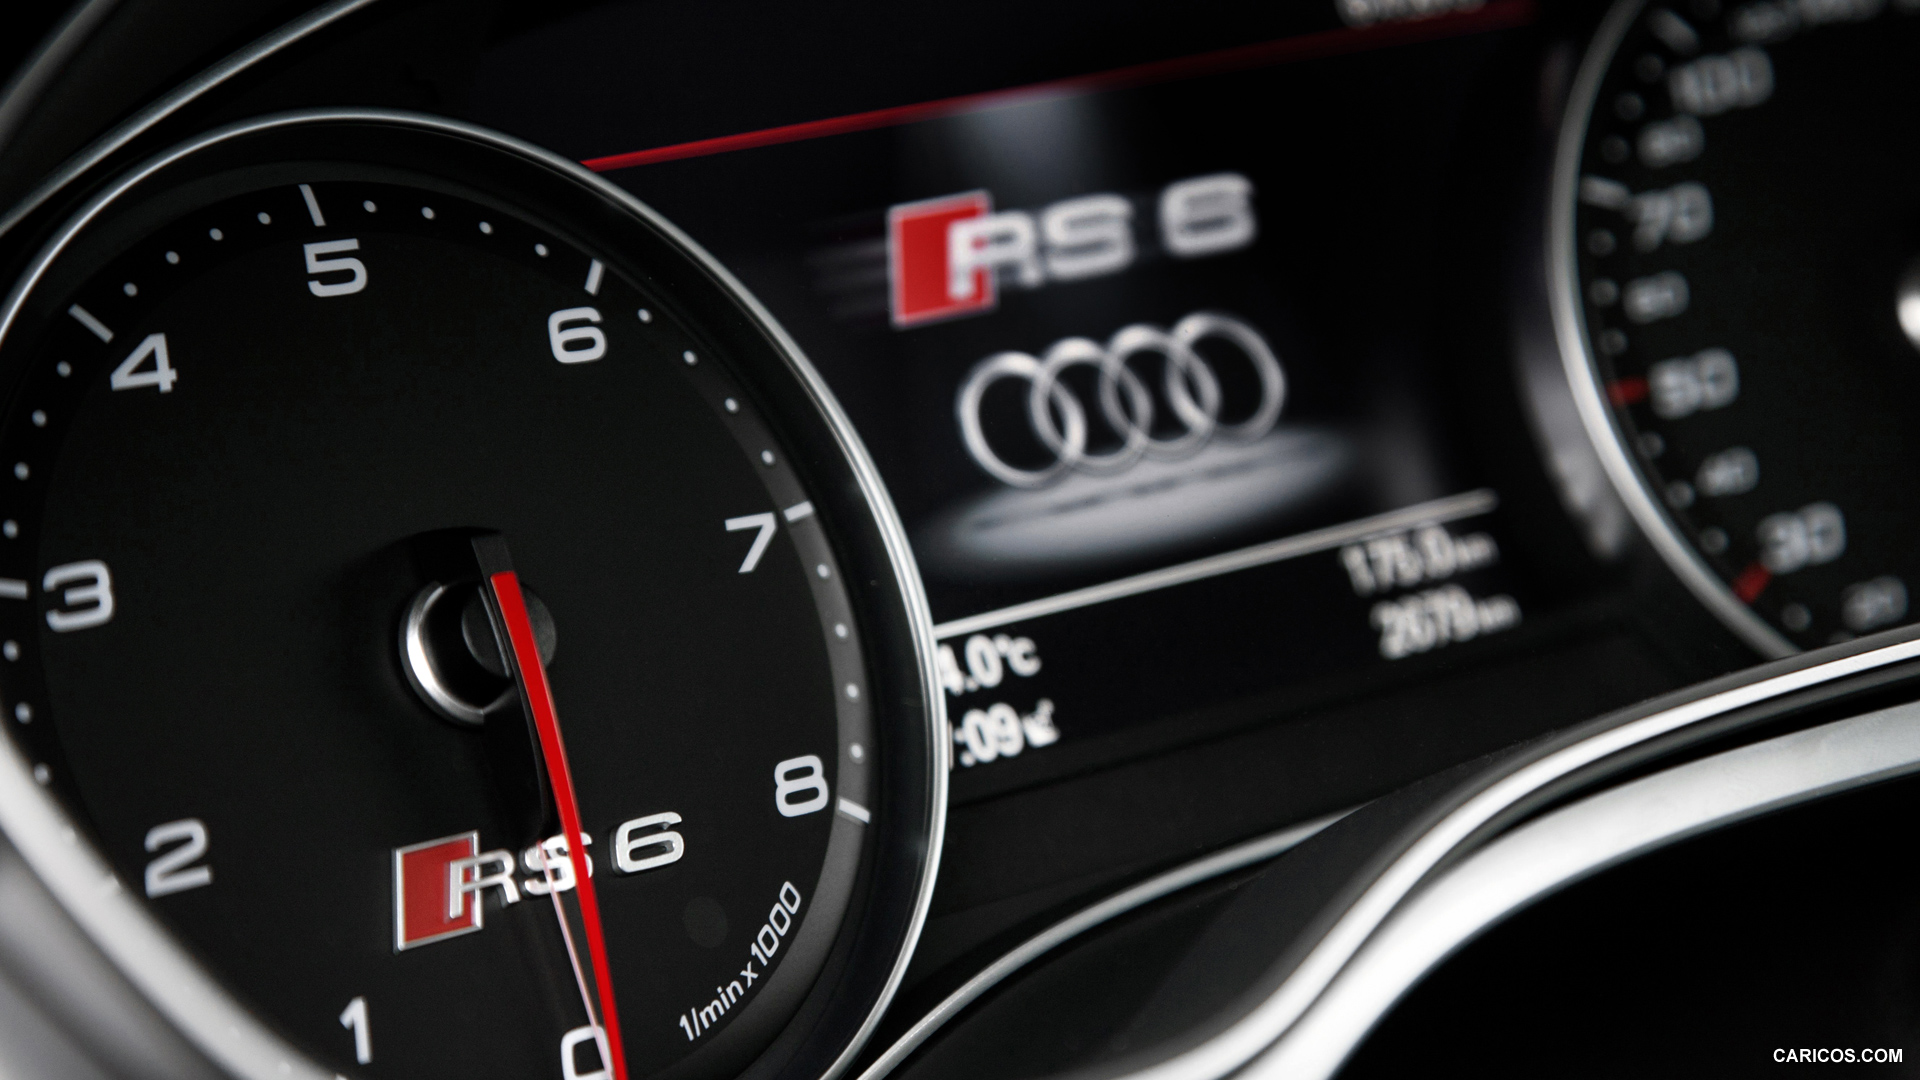 1920x1080 - Audi RS6 Wallpapers 22